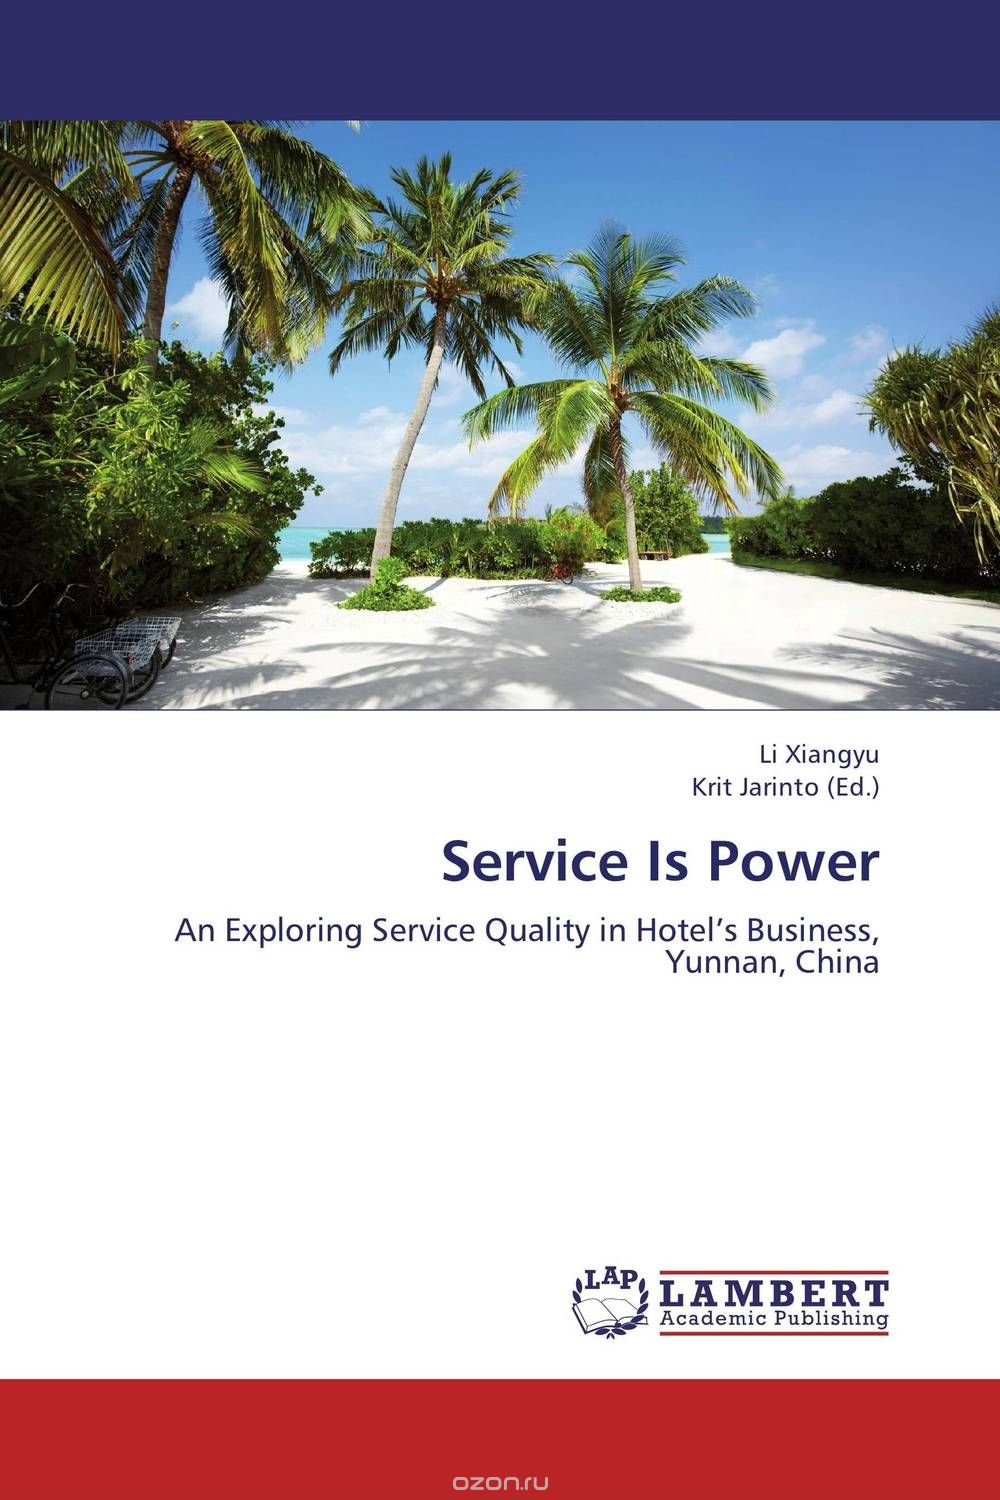 Service Is Power